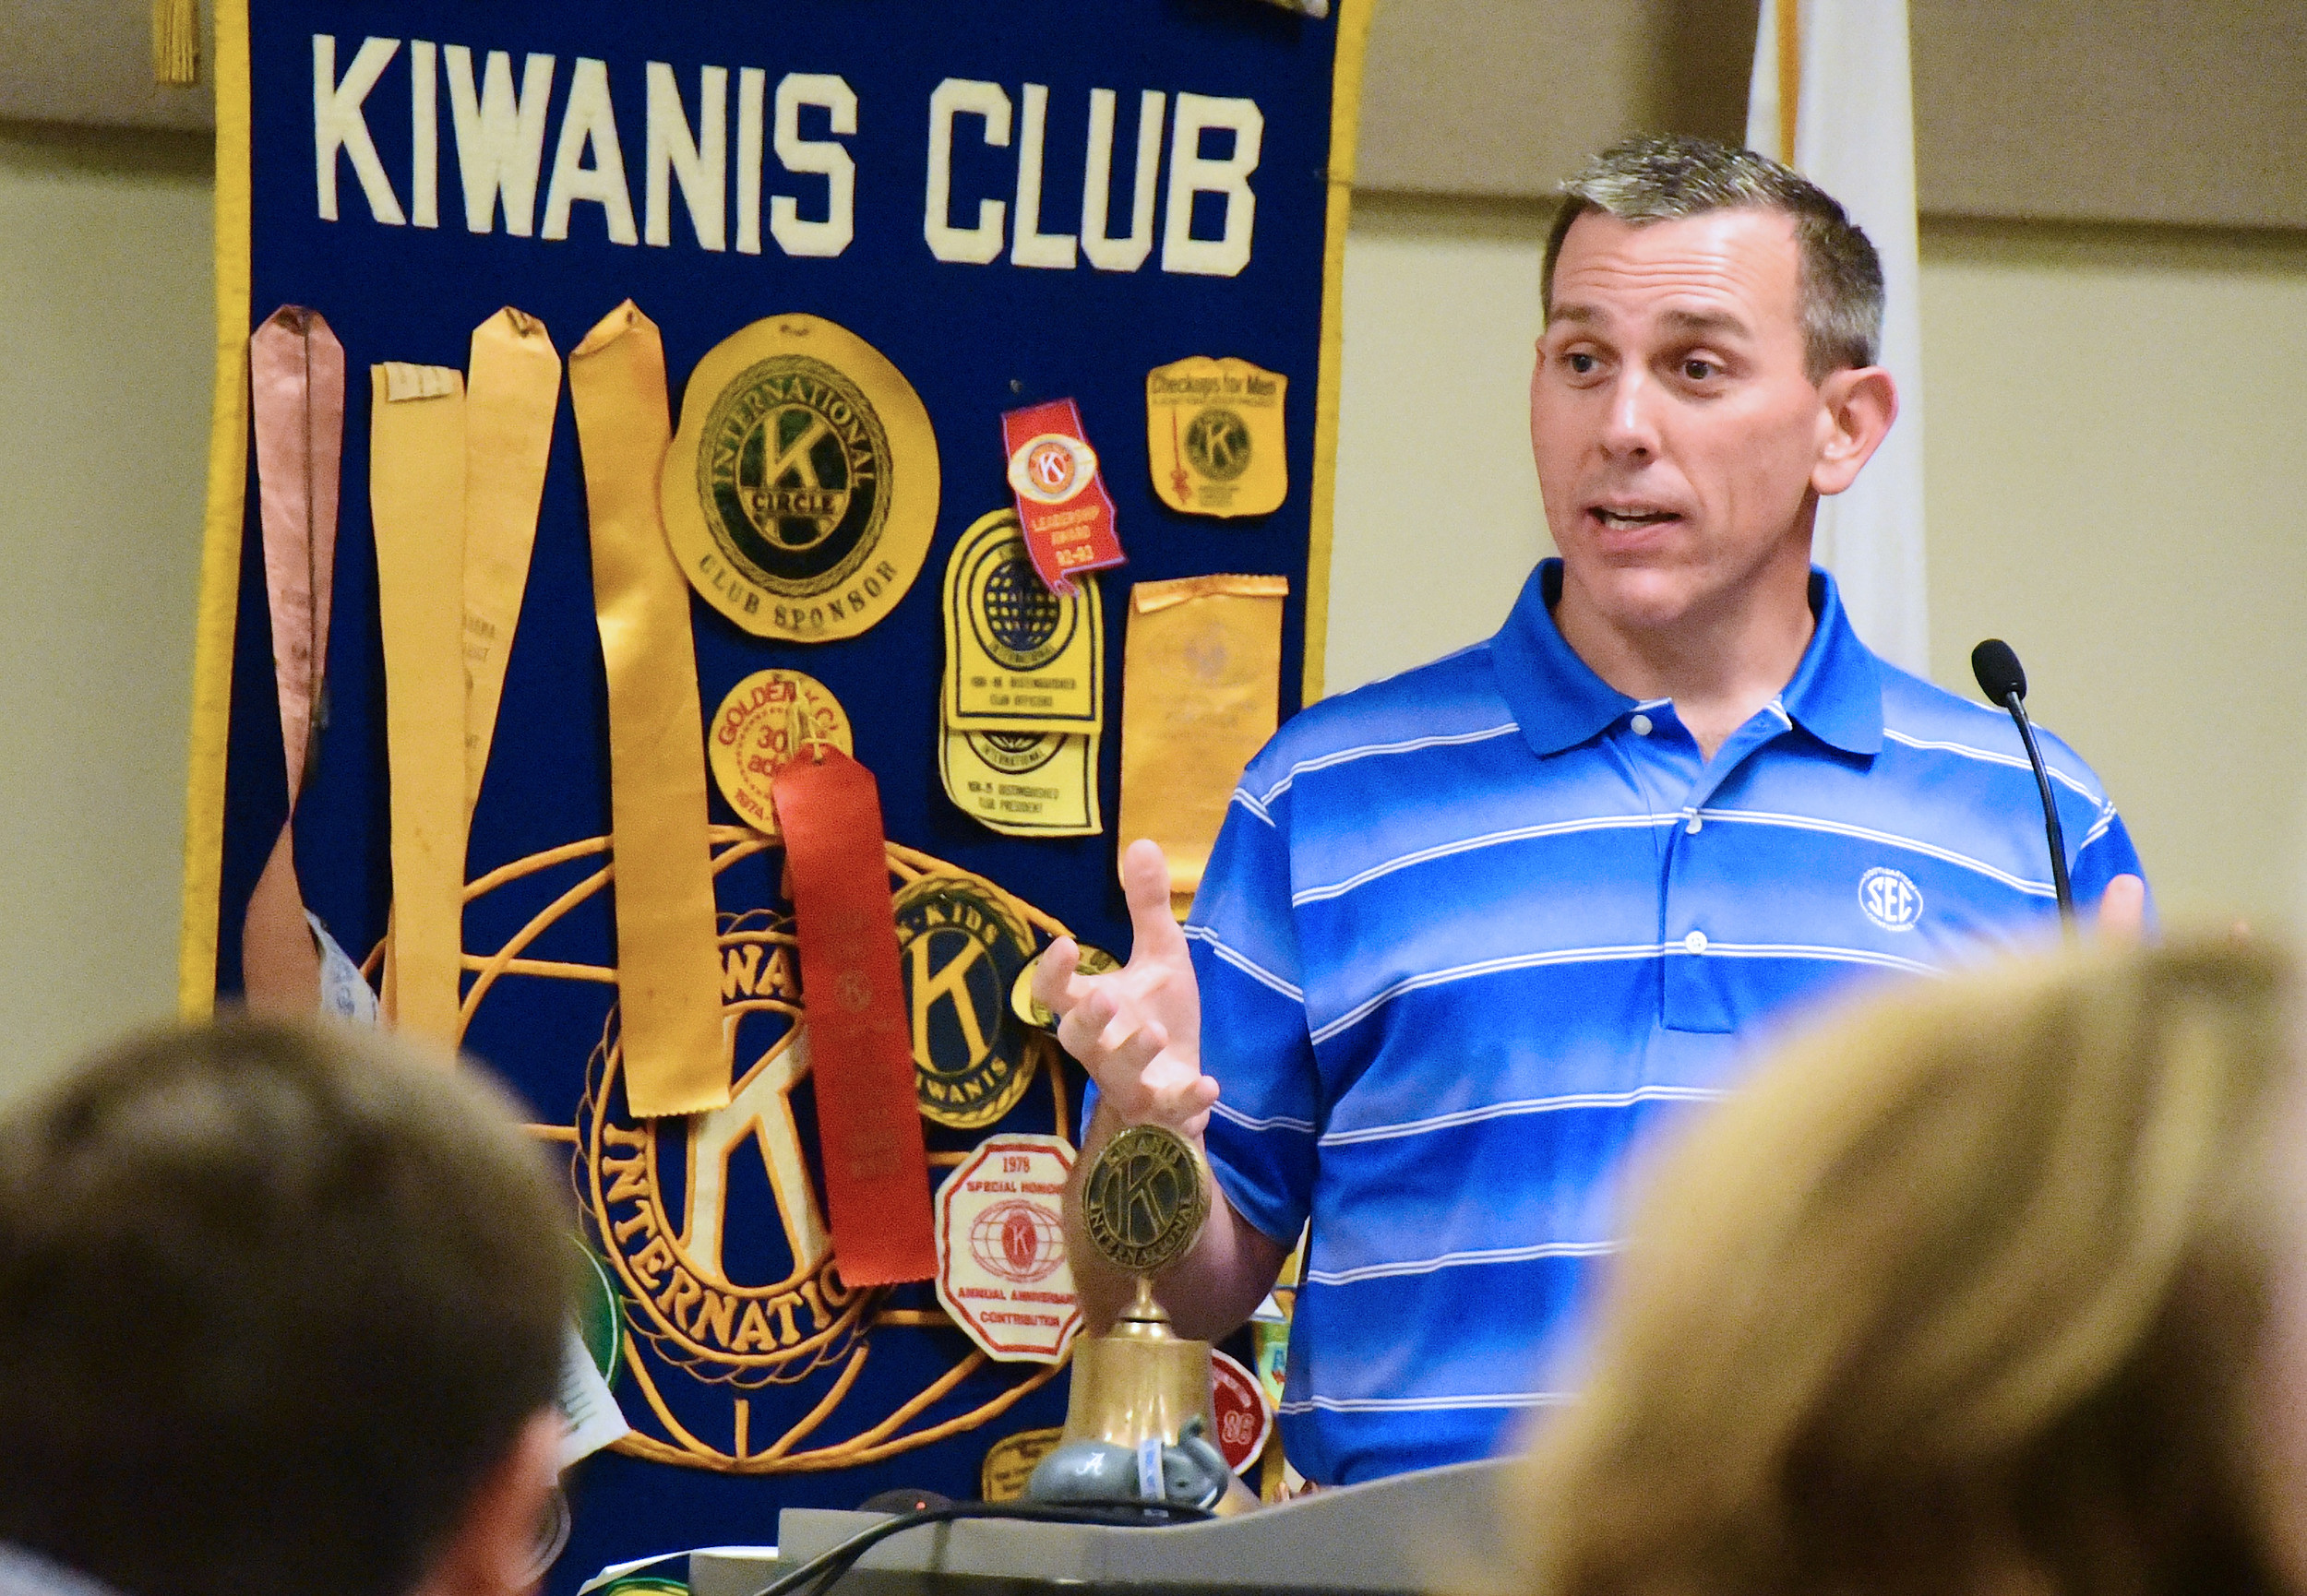 Jasper's Phillip Davenport, who is entering his third season as an SEC football official and 20th season overall, was the guest speaker at Monday's meeting of the Kiwanis Club of Jasper. Aside from officiating football, Davenport works as a physical therapist at Rehab South in Jasper.  Daily Mountain Eagle - Ron Harris